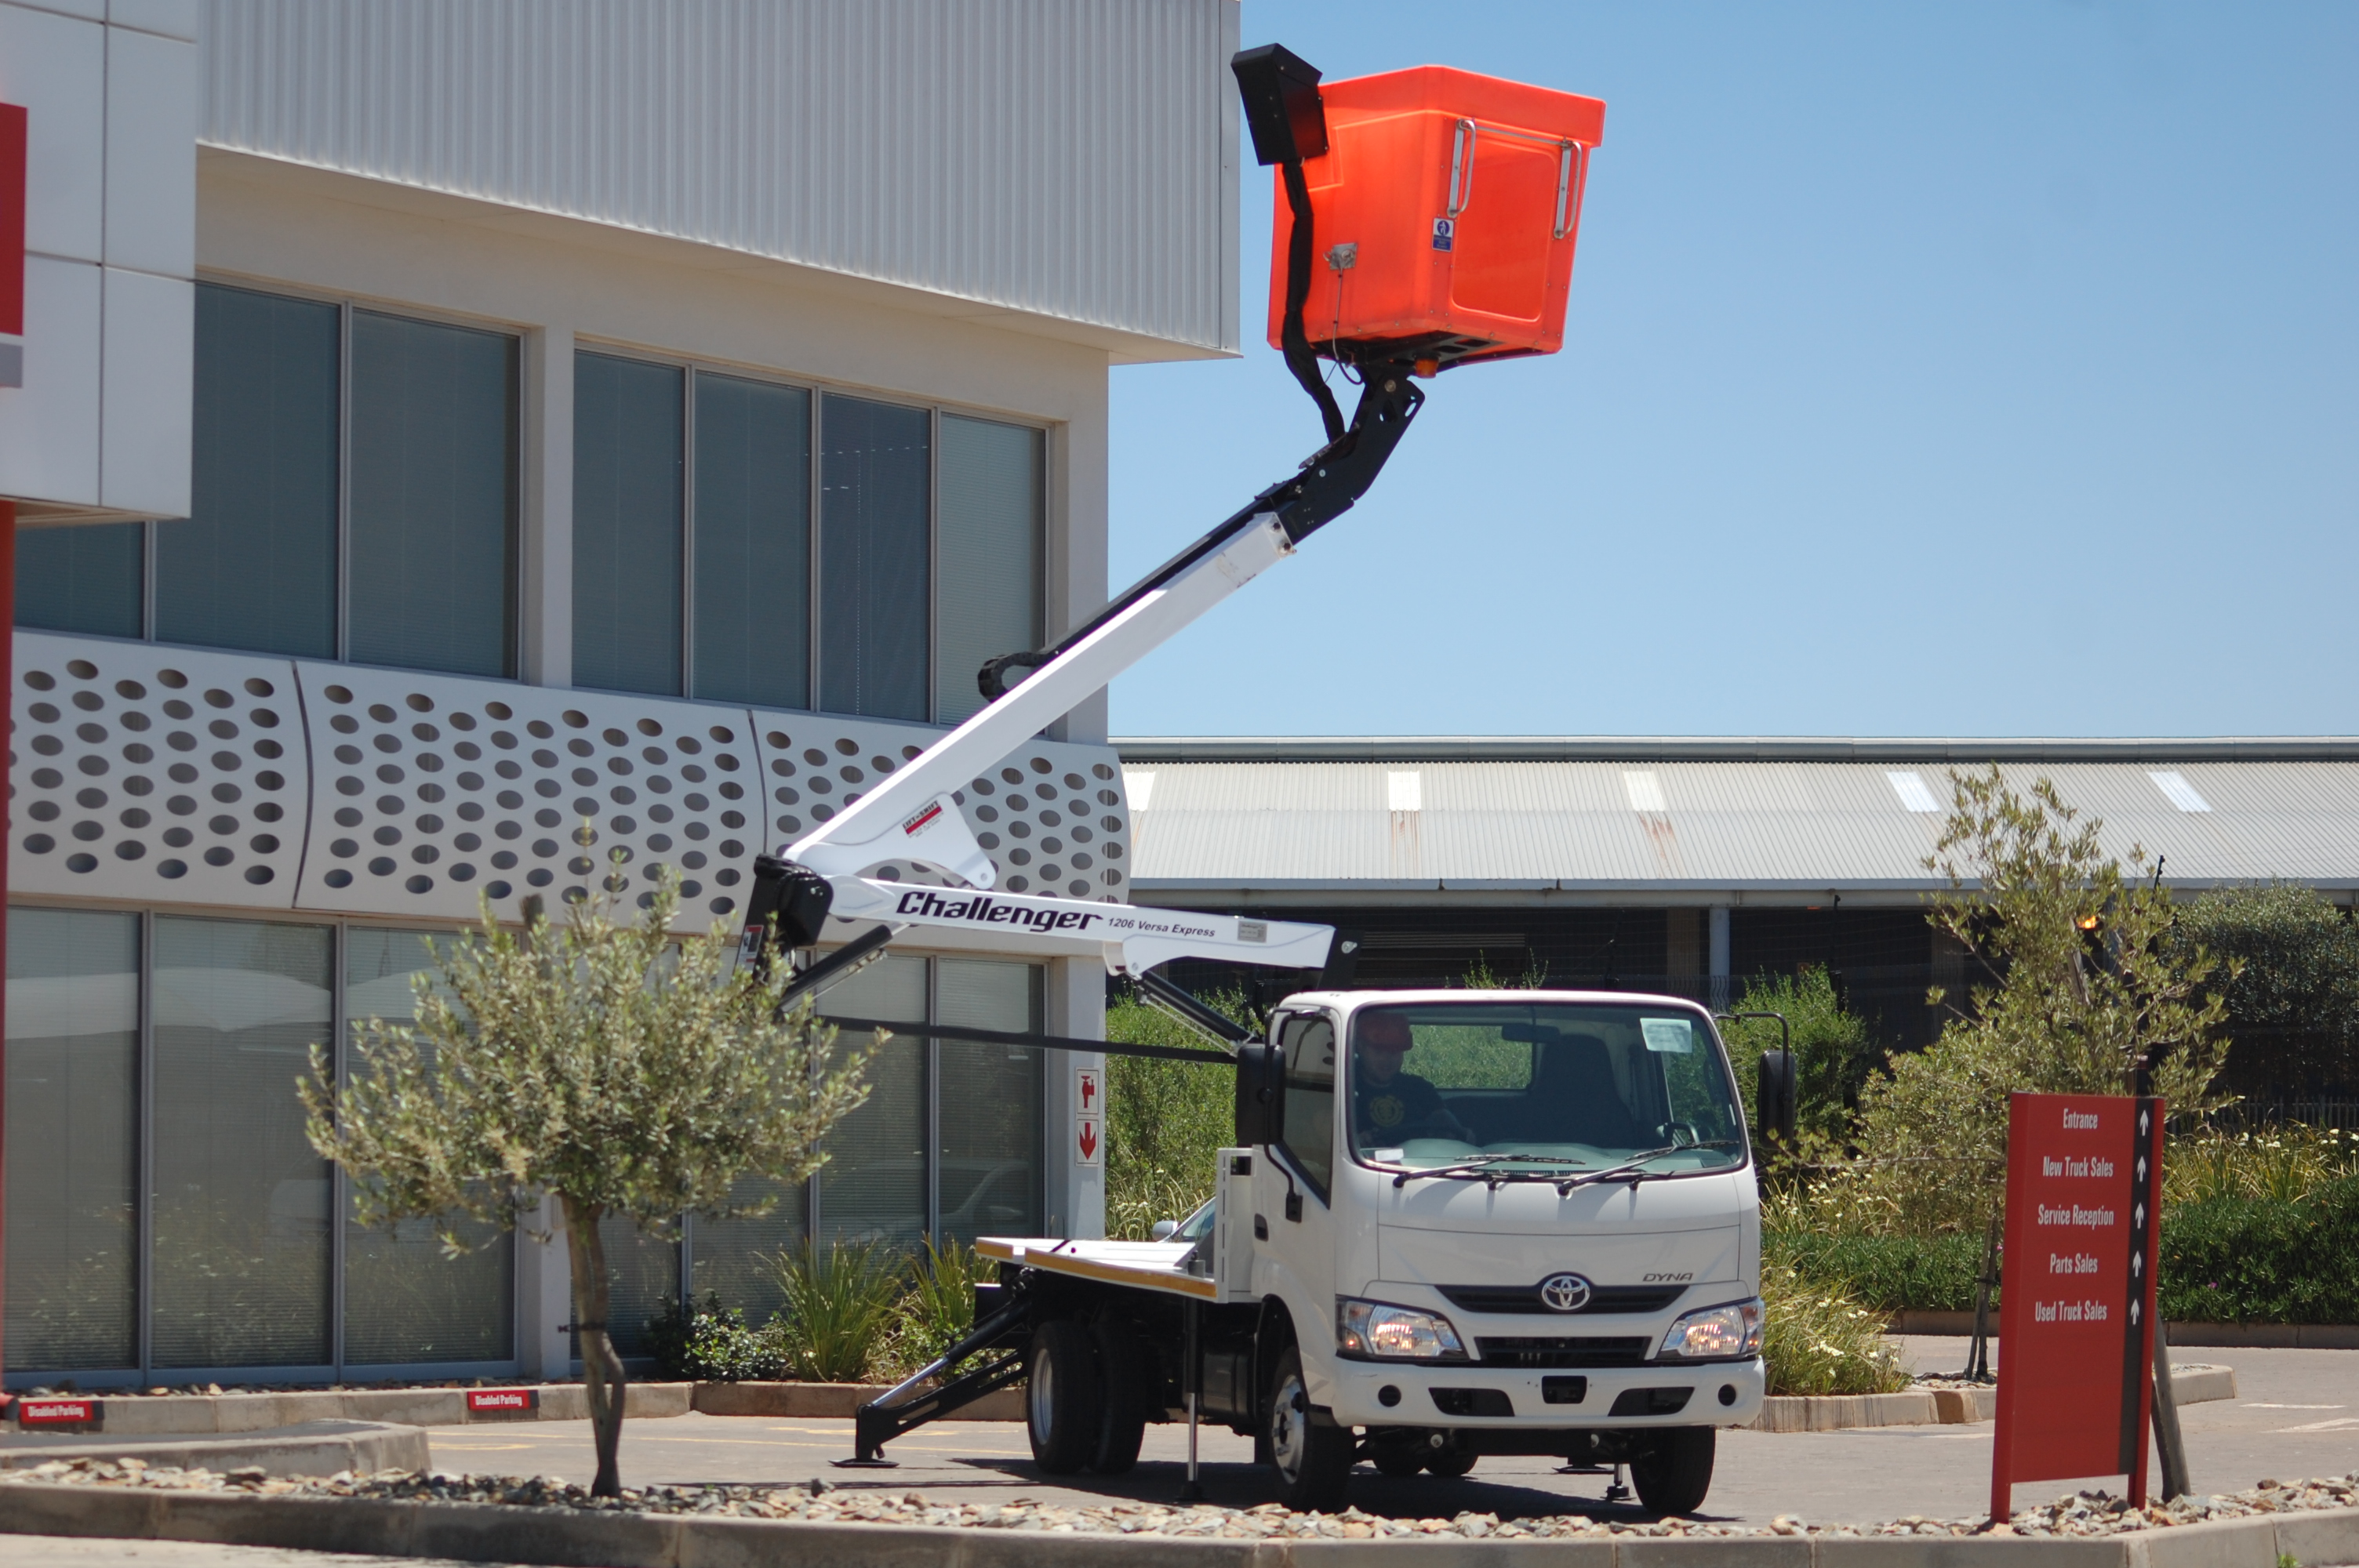 lifted aerial platform truck